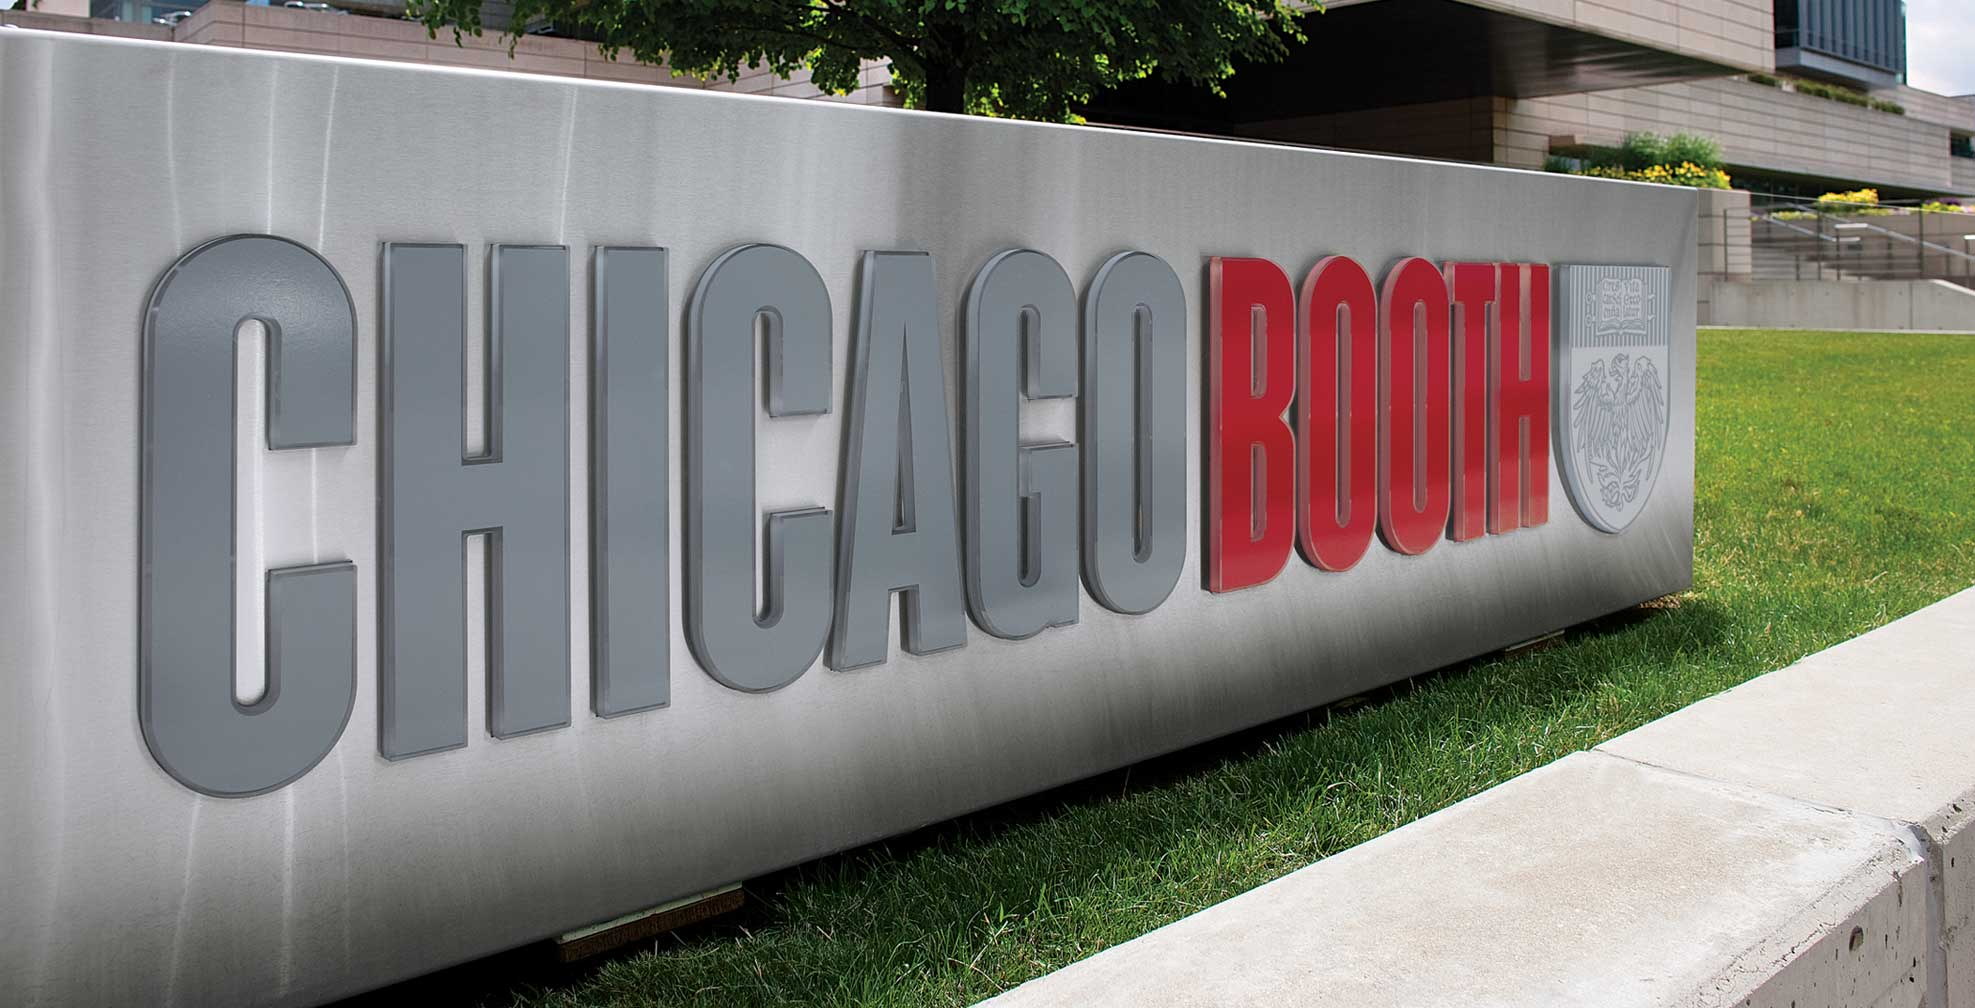 chicago booth school business essays If booth would be anything like its essay question, then i had found the school for me of all the application essays i wrote, booth's managed to be the hardest and the easiest.